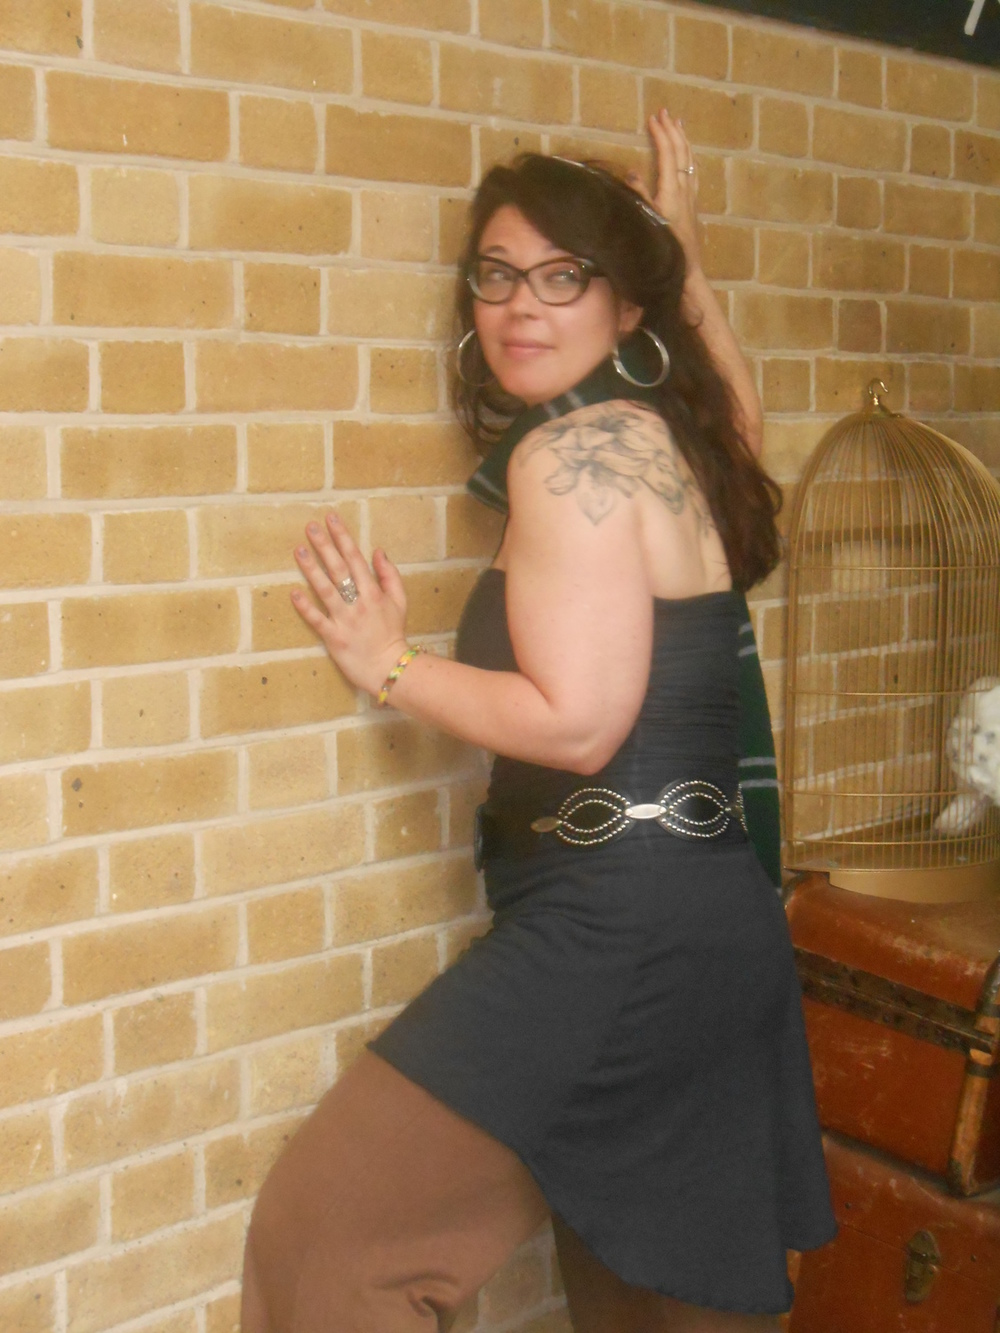 Attempting to go through the wall of platform 9 3/4 in my Gaia outfit (King's crossing, London)! - Marie